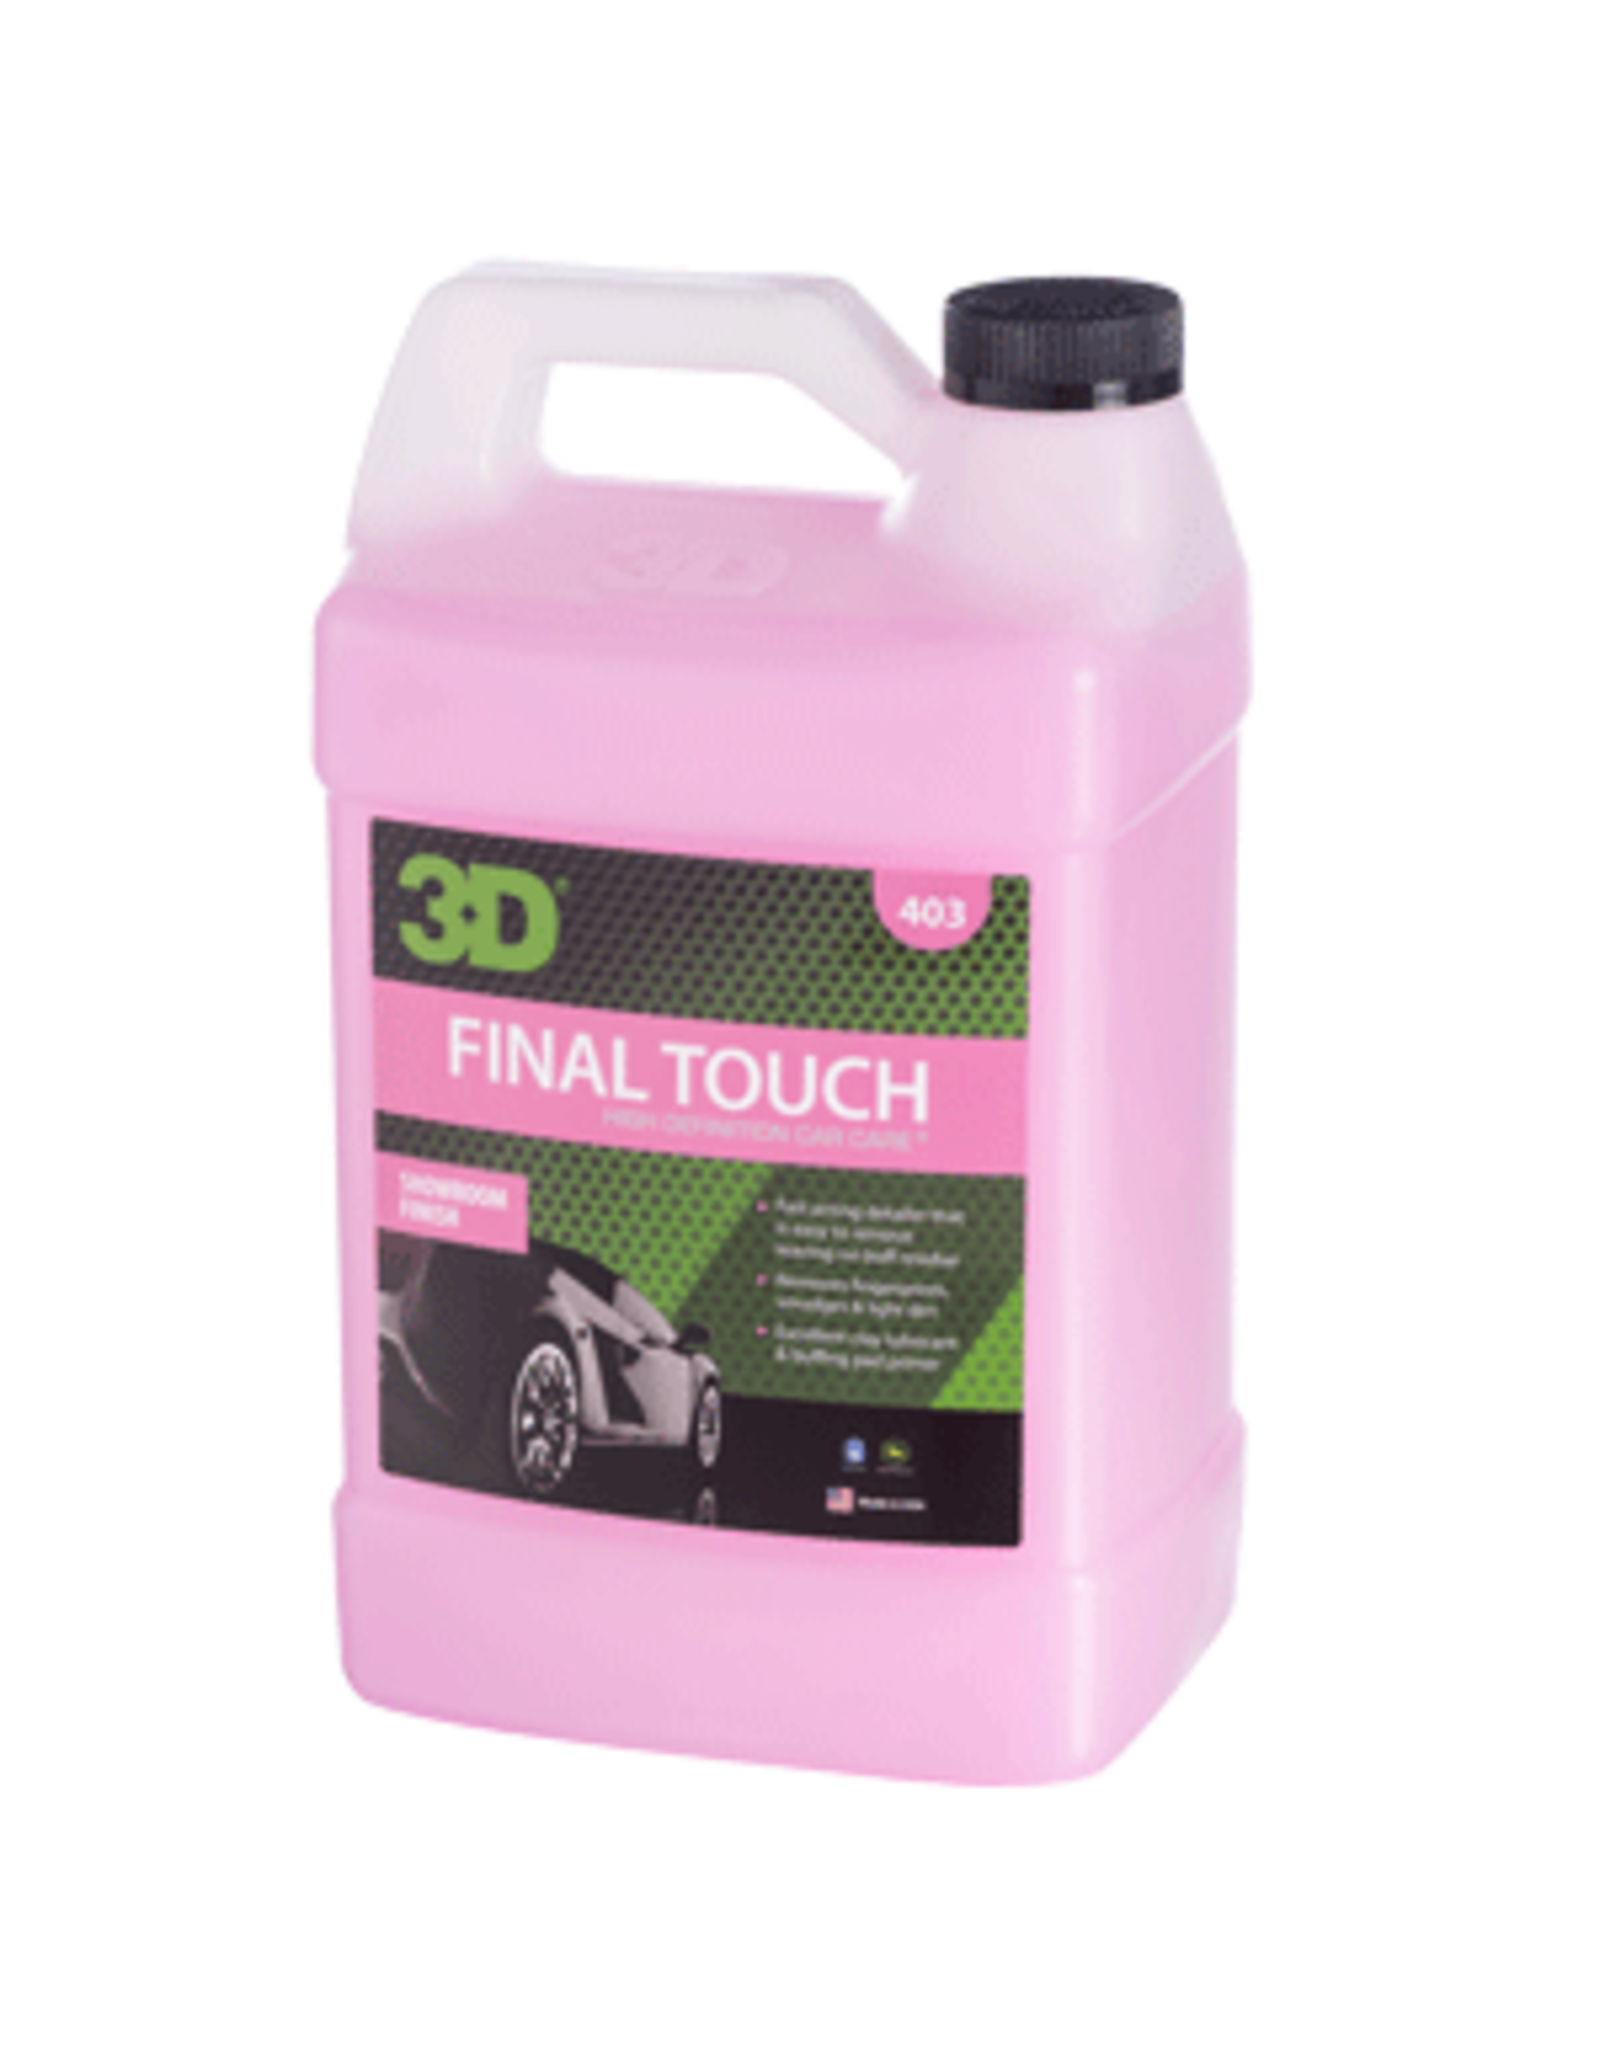 3D PRODUCTS 3D Final Touch - 1 Gallon / 3.78 Lt Can